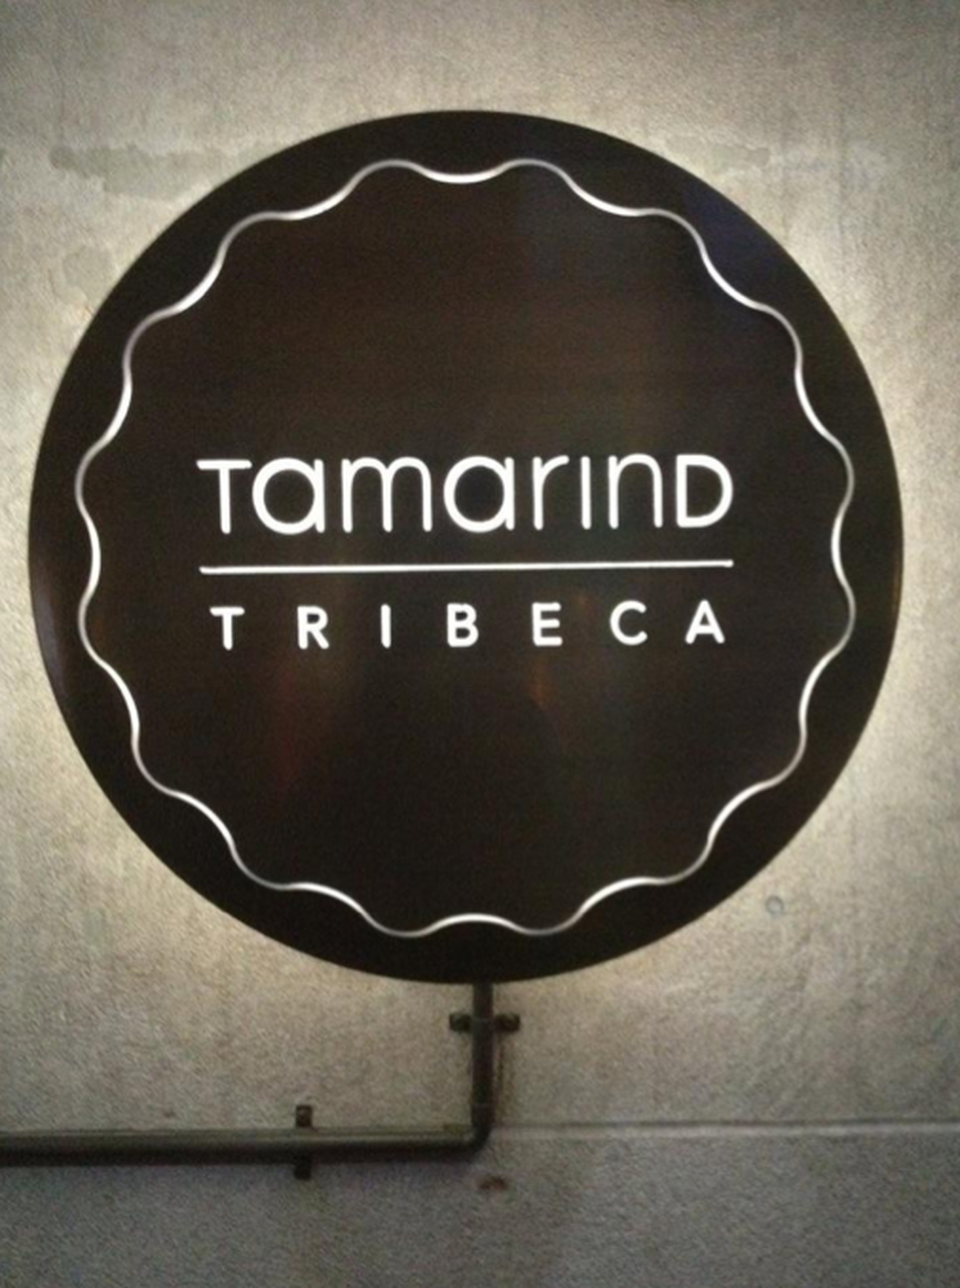 Try the chicken tikka masala at Tamarind TriBeCa: the tandoori chicken dish is slathered in a creamy tomato and fenugreek sauce. #TLTips